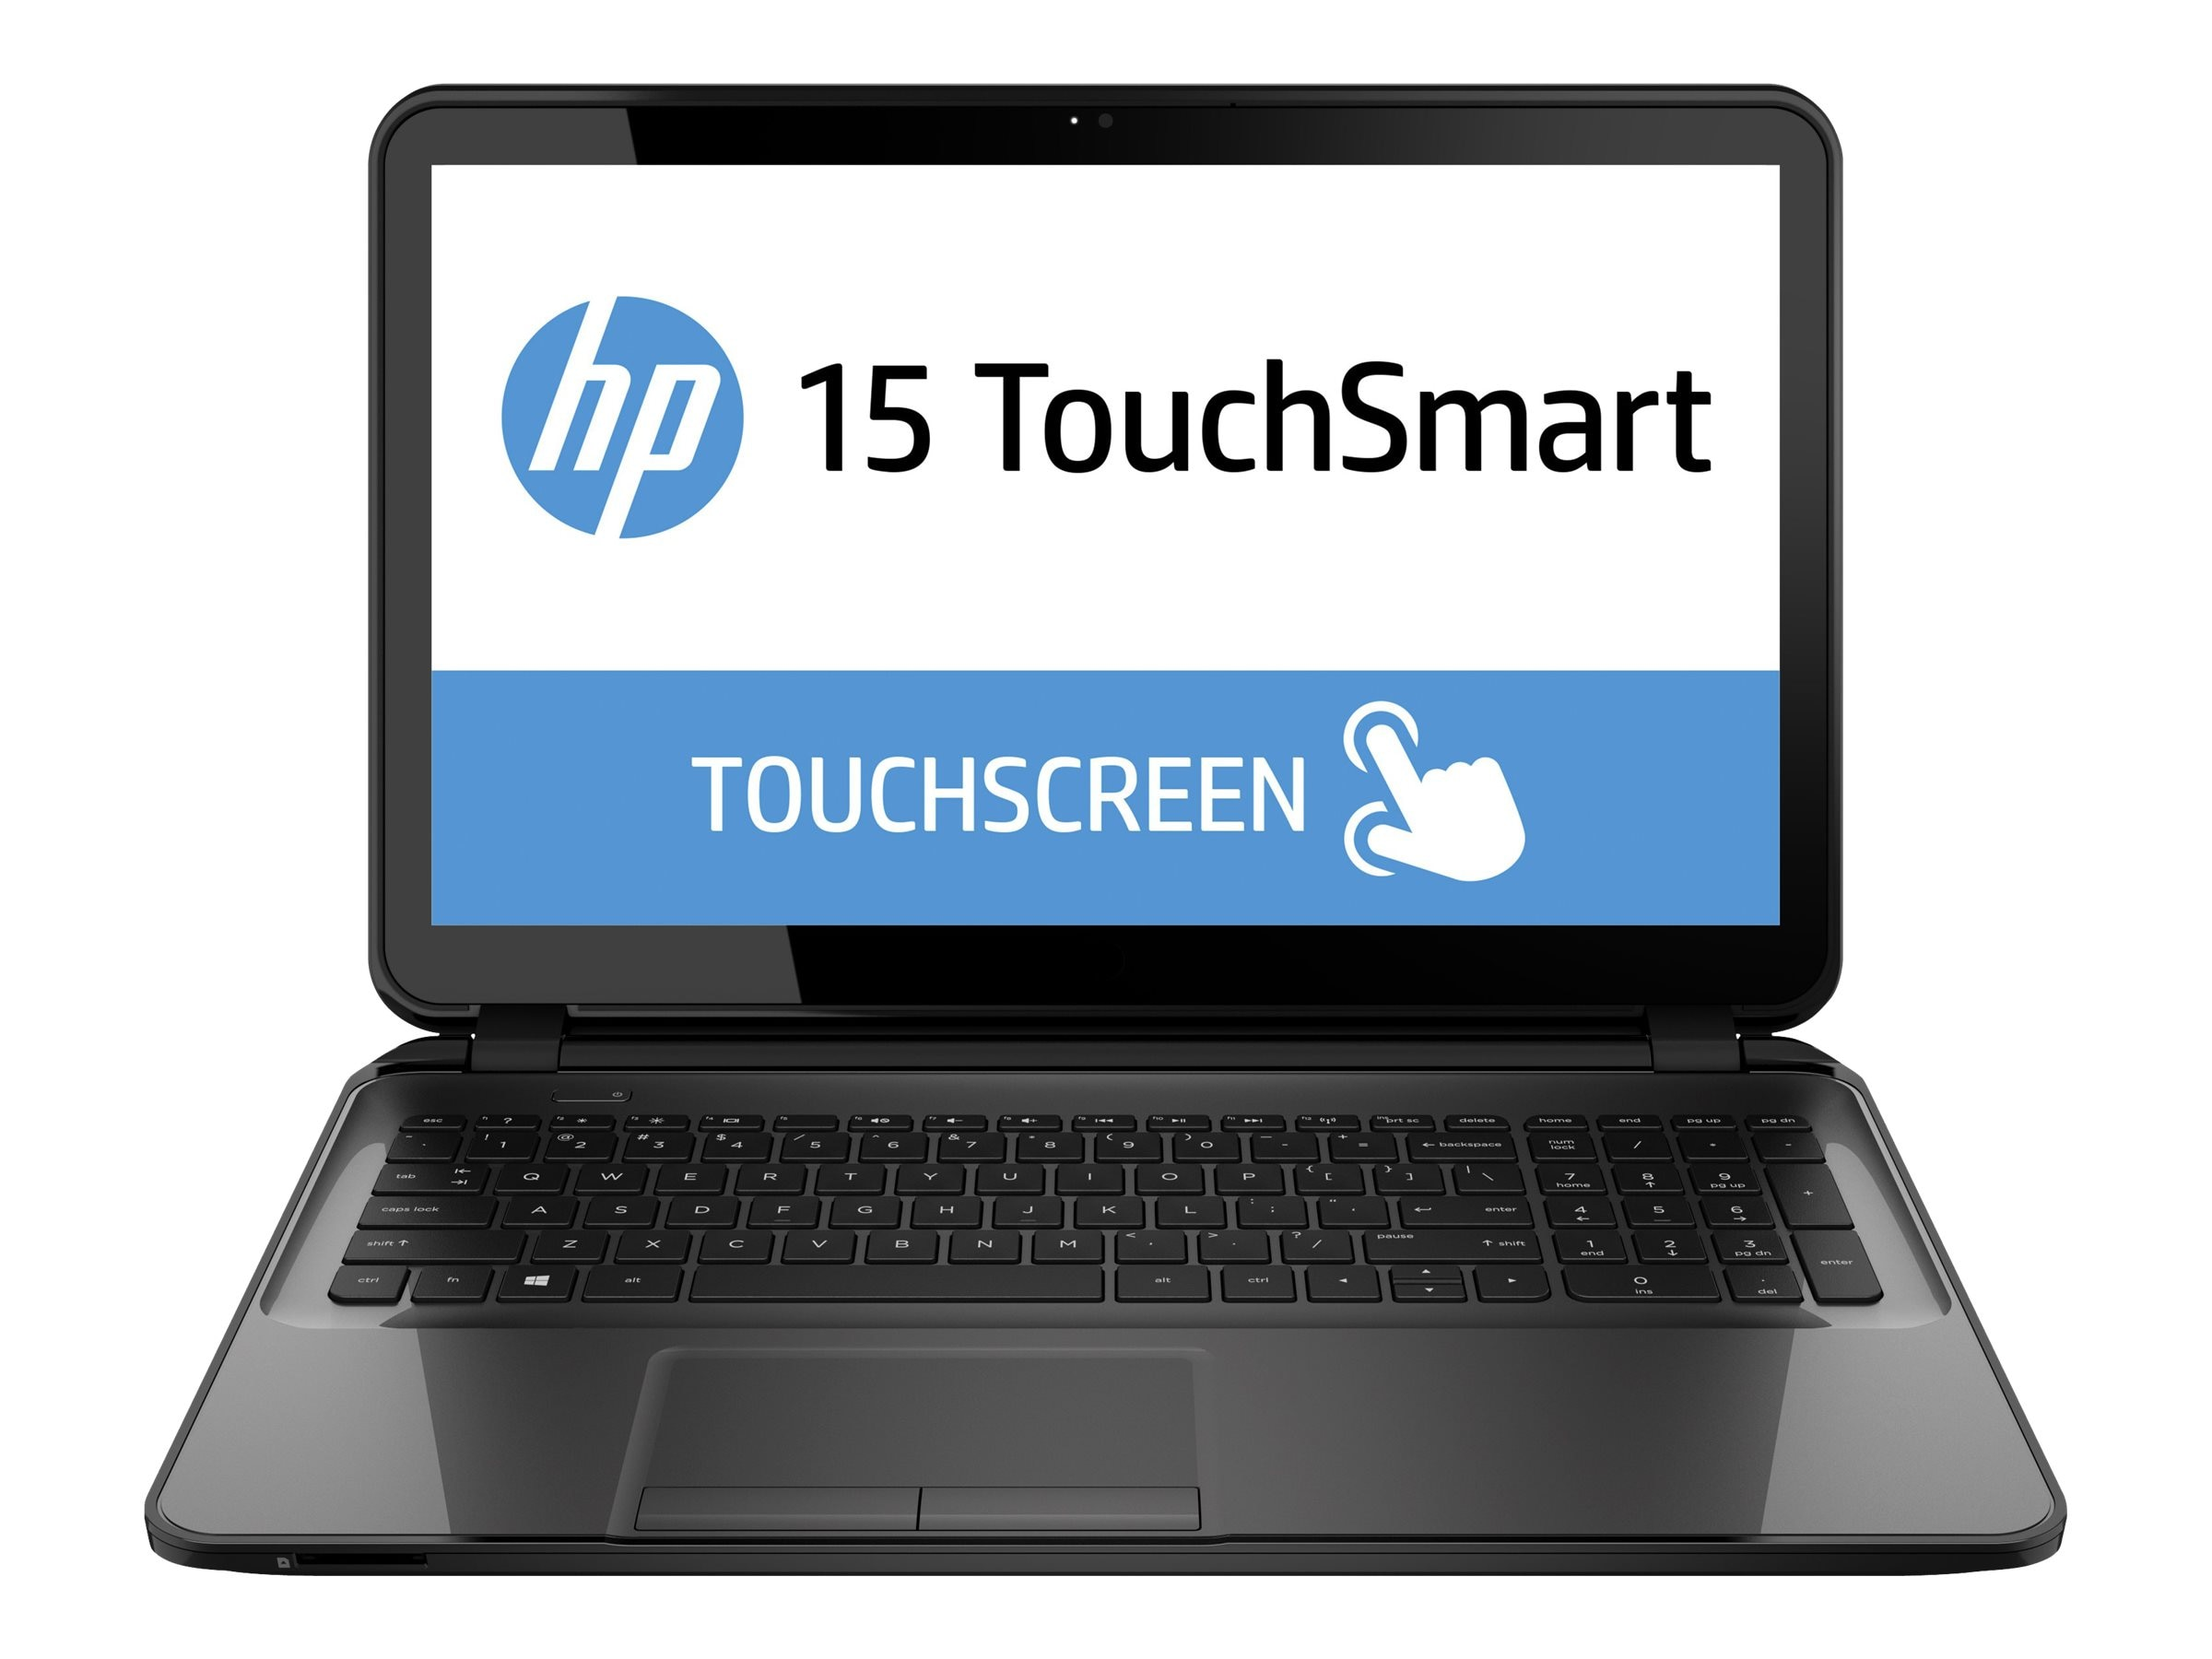 HP Envy TouchSmart 15-D095nr : 1.5GHz A4-Series 15.6in display, G1U88UA#ABA